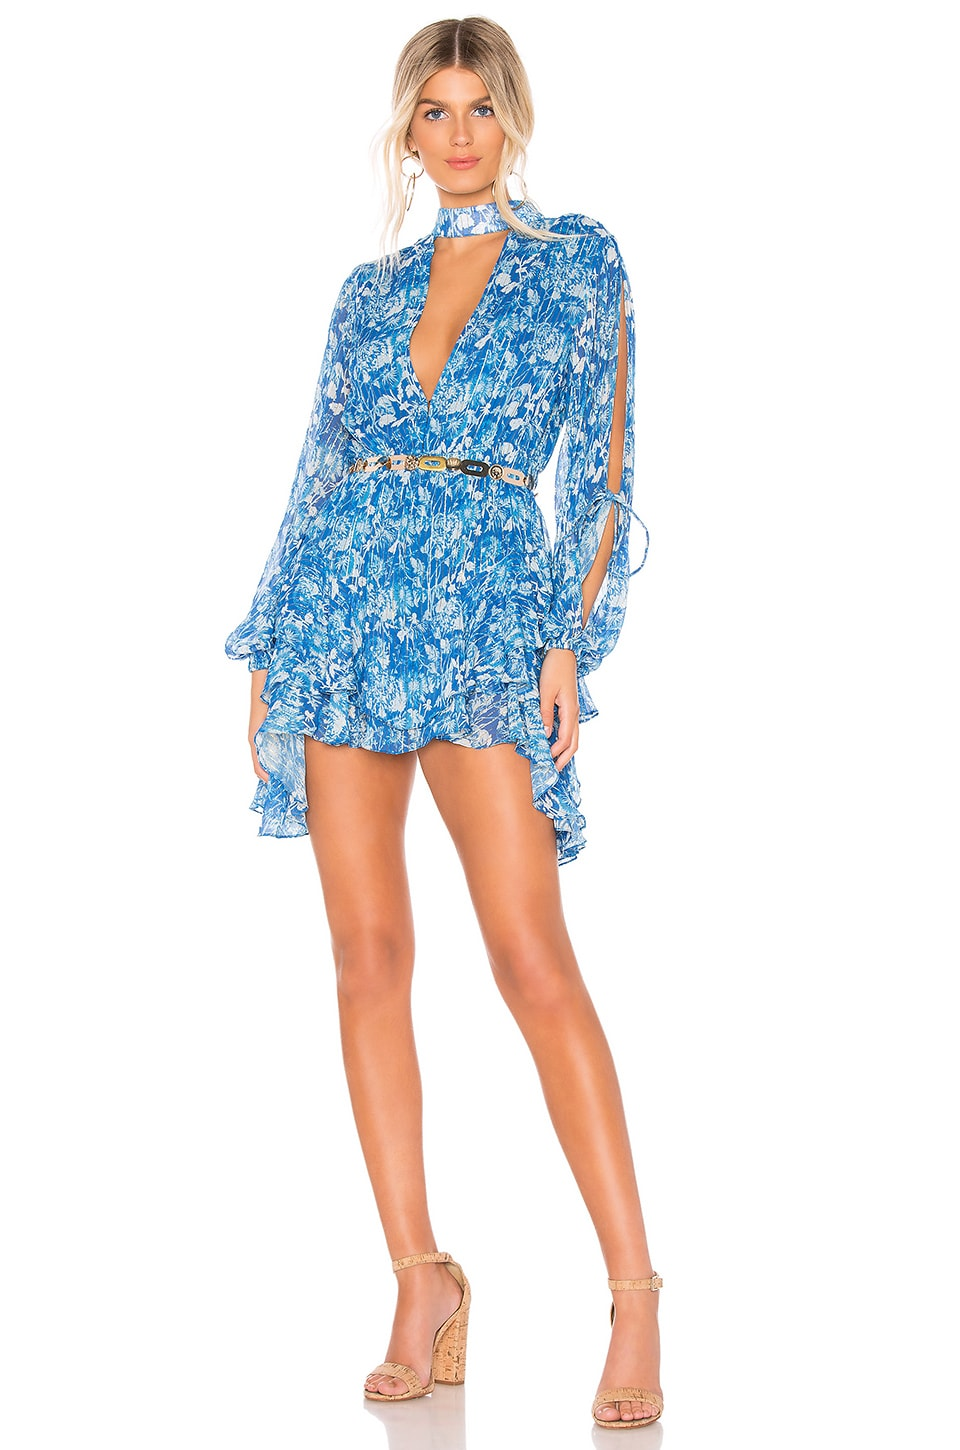 HEMANT AND NANDITA x REVOLVE Mini Dress in Blue